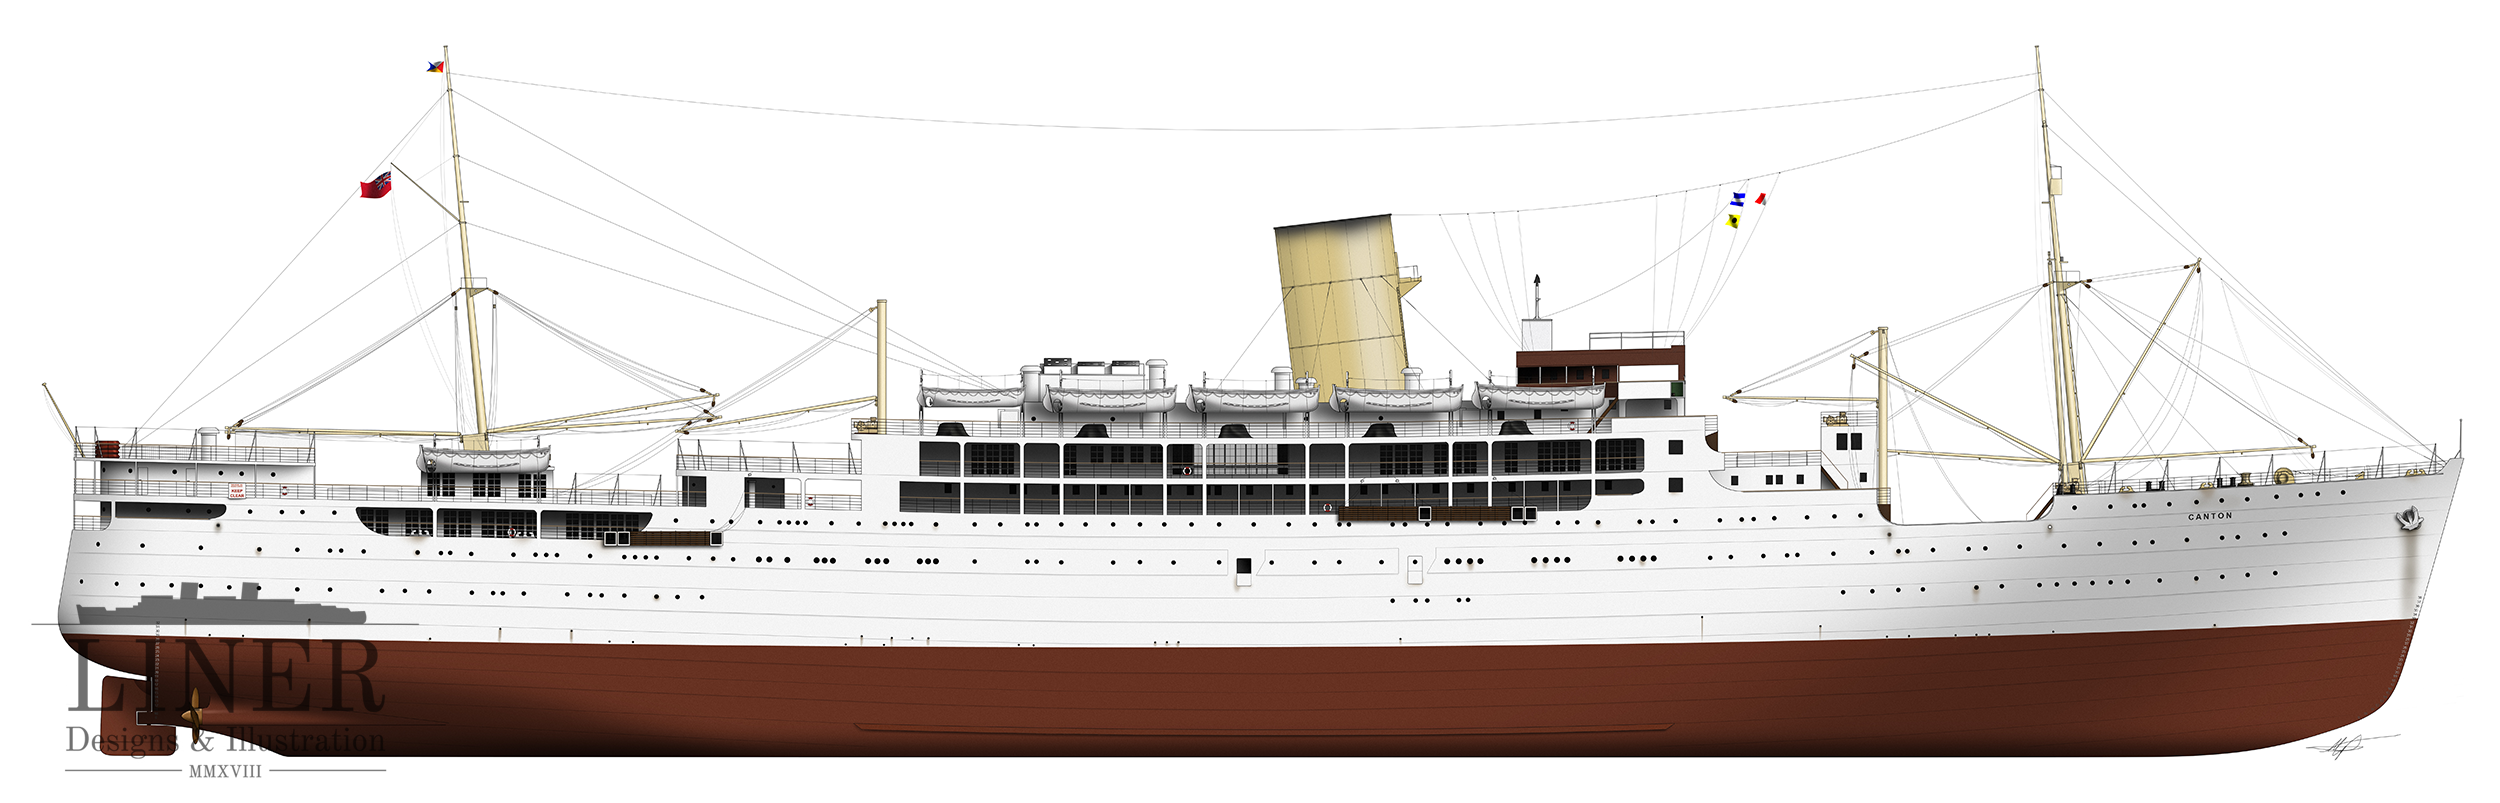 P&O's elegant RMS Canton - not a big liner by any stretch but a real beauty. This was the first ship Ken ever stepped foot on - but only in dock. Illustration by Liner Designs -  learn more.